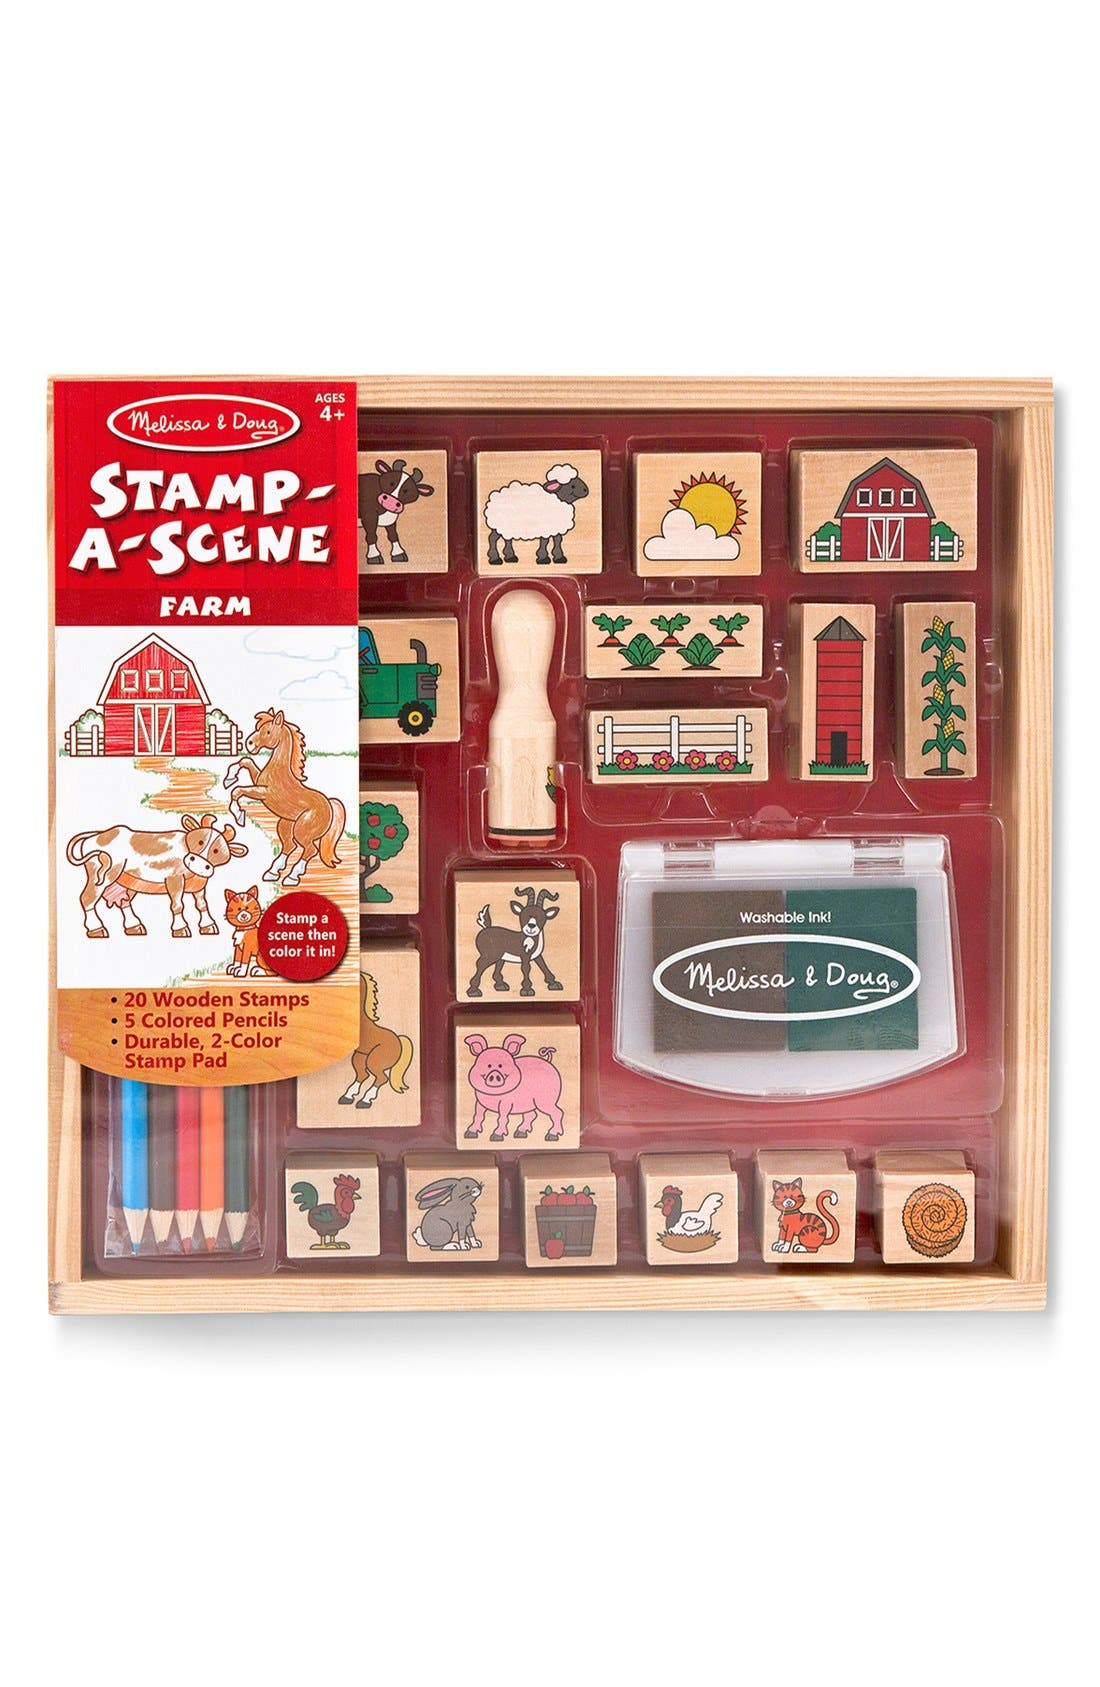 'Stamp-A-Scene - Farm' Stamp Set,                         Main,                         color, NONE